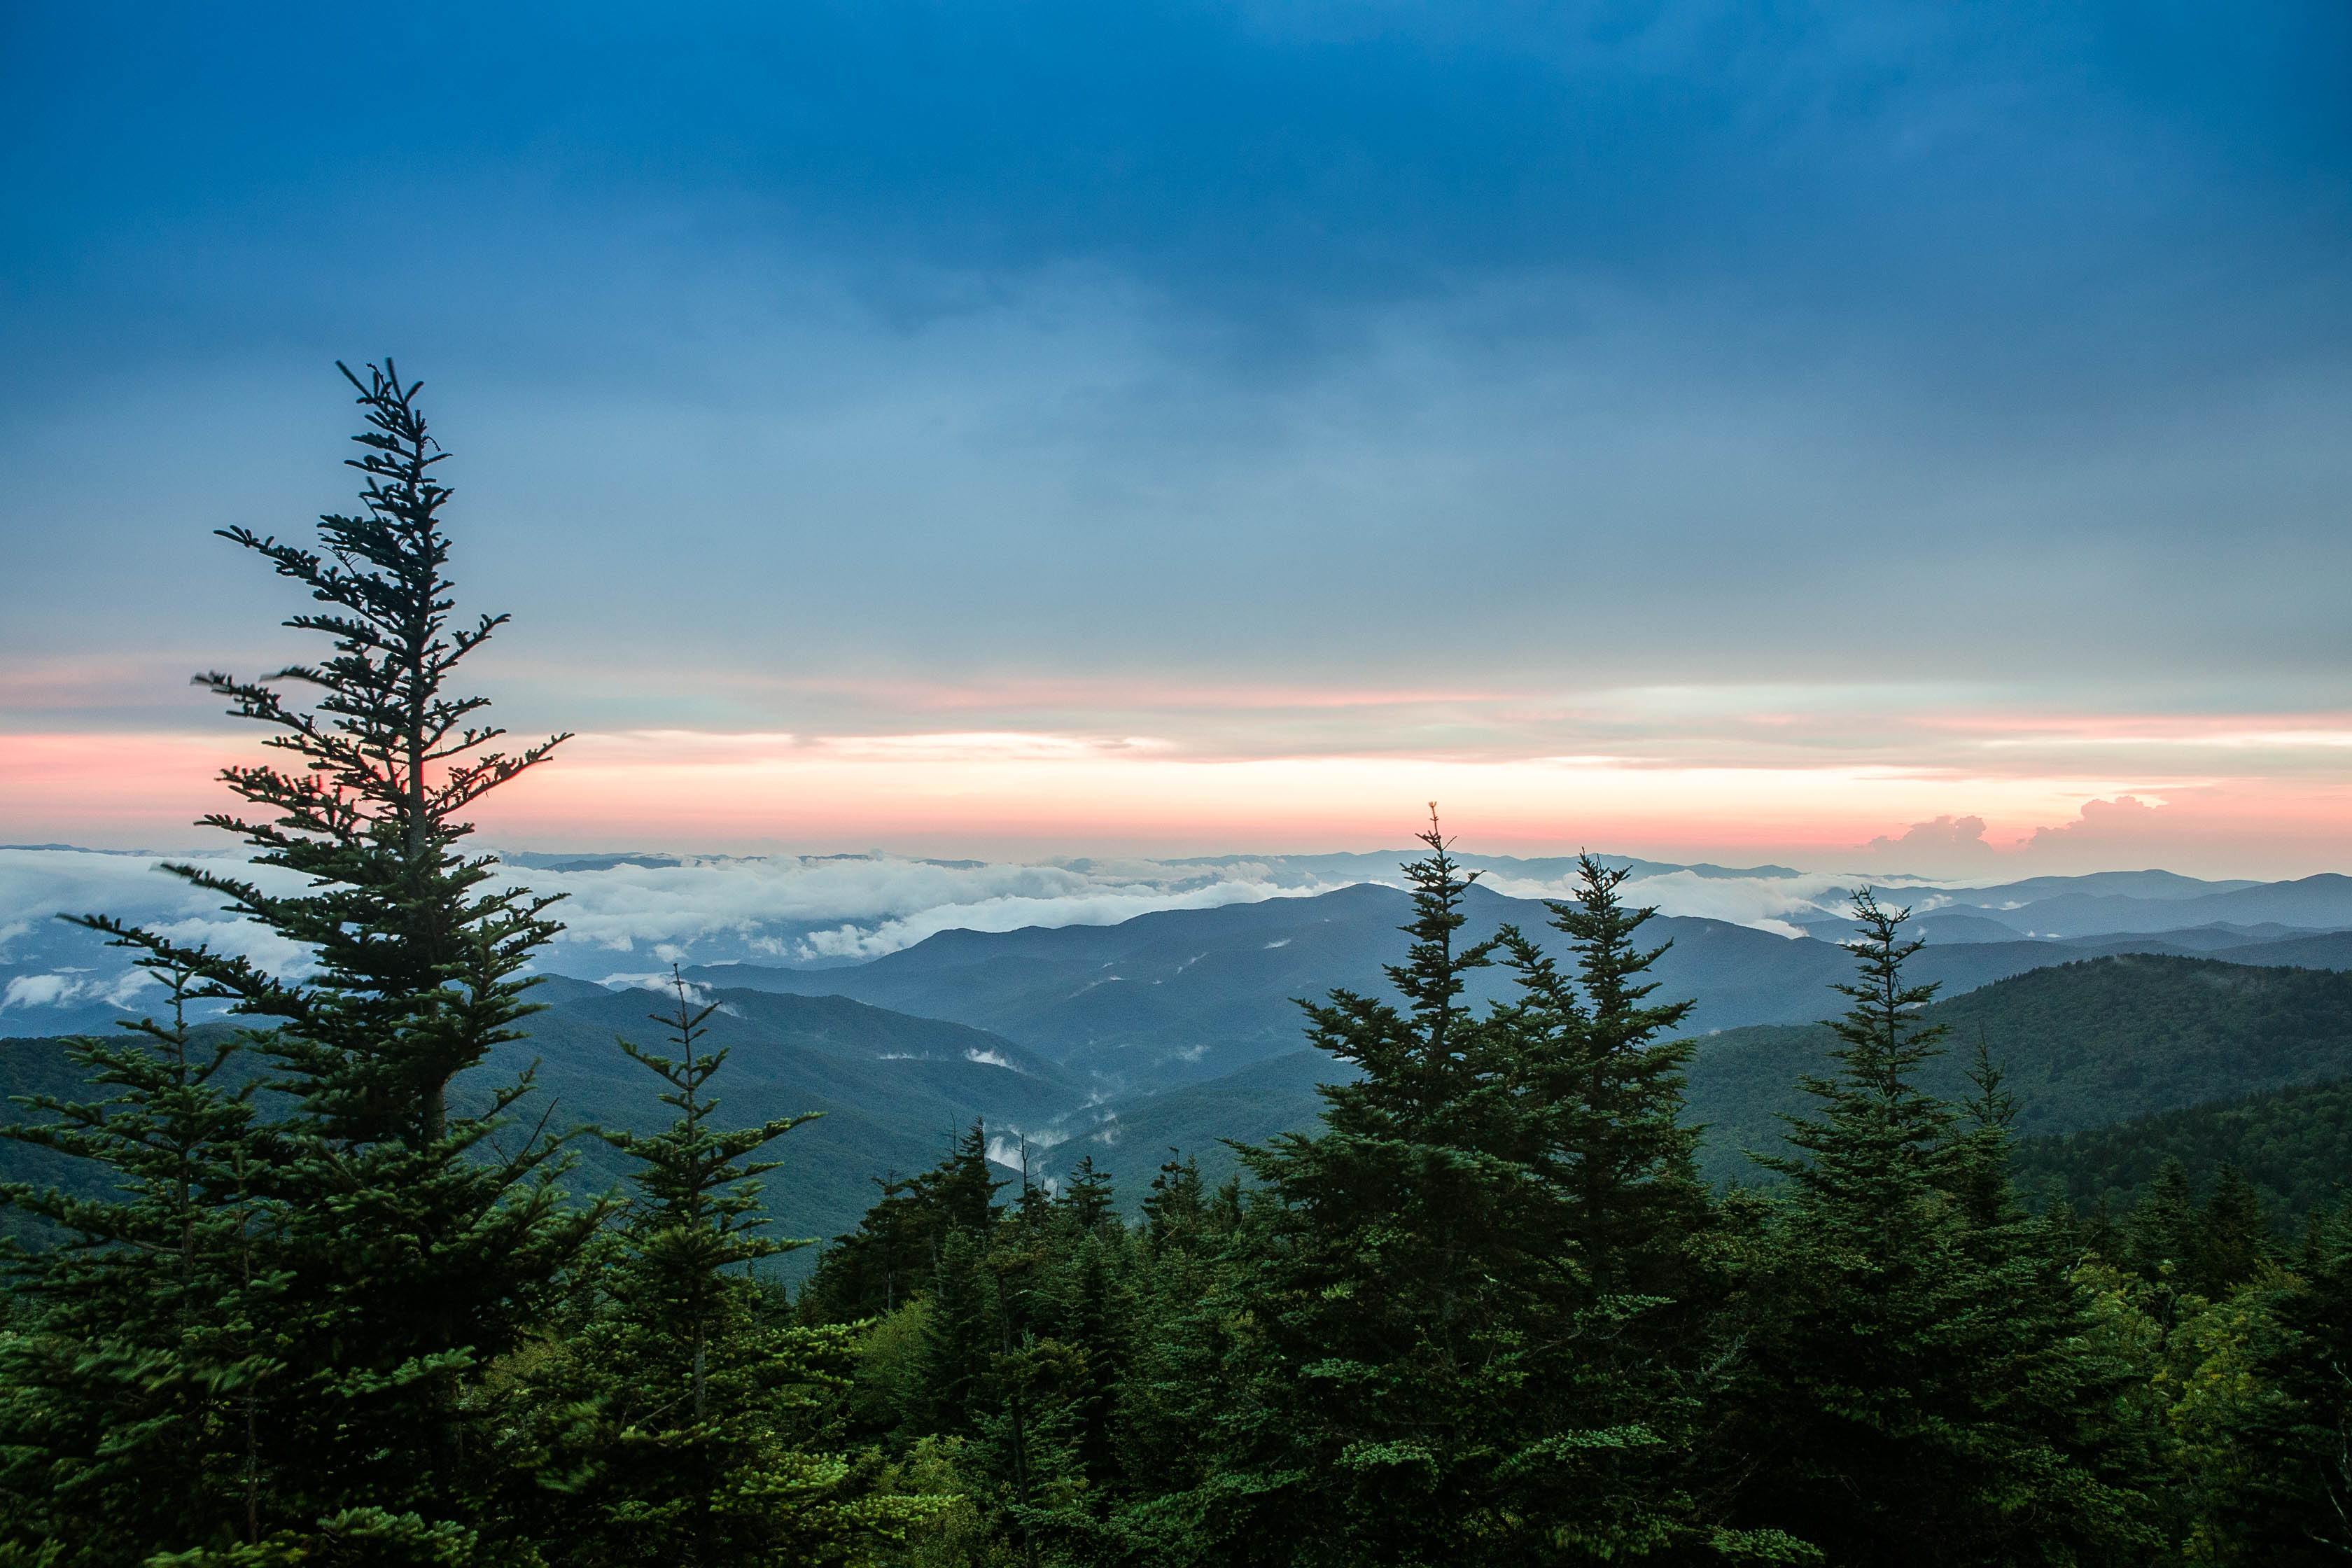 Things to do in the Smoky Moutains - visit Clingman's Dome.